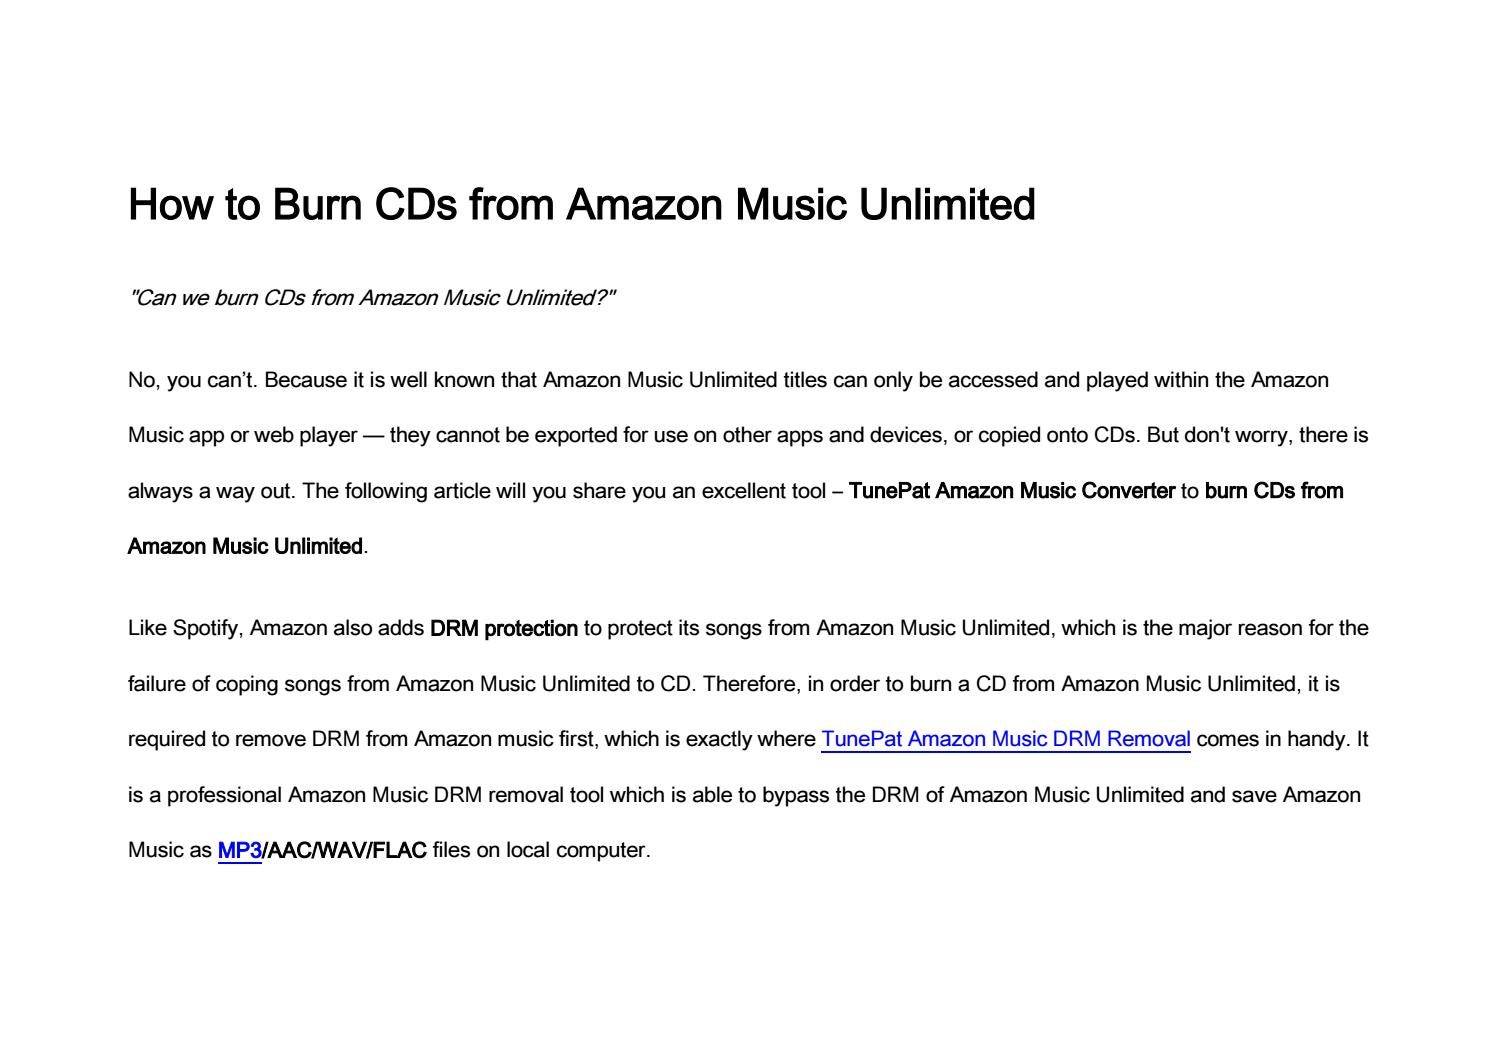 How to Burn CDs from Amazon Music Unlimited by Jack Samuel